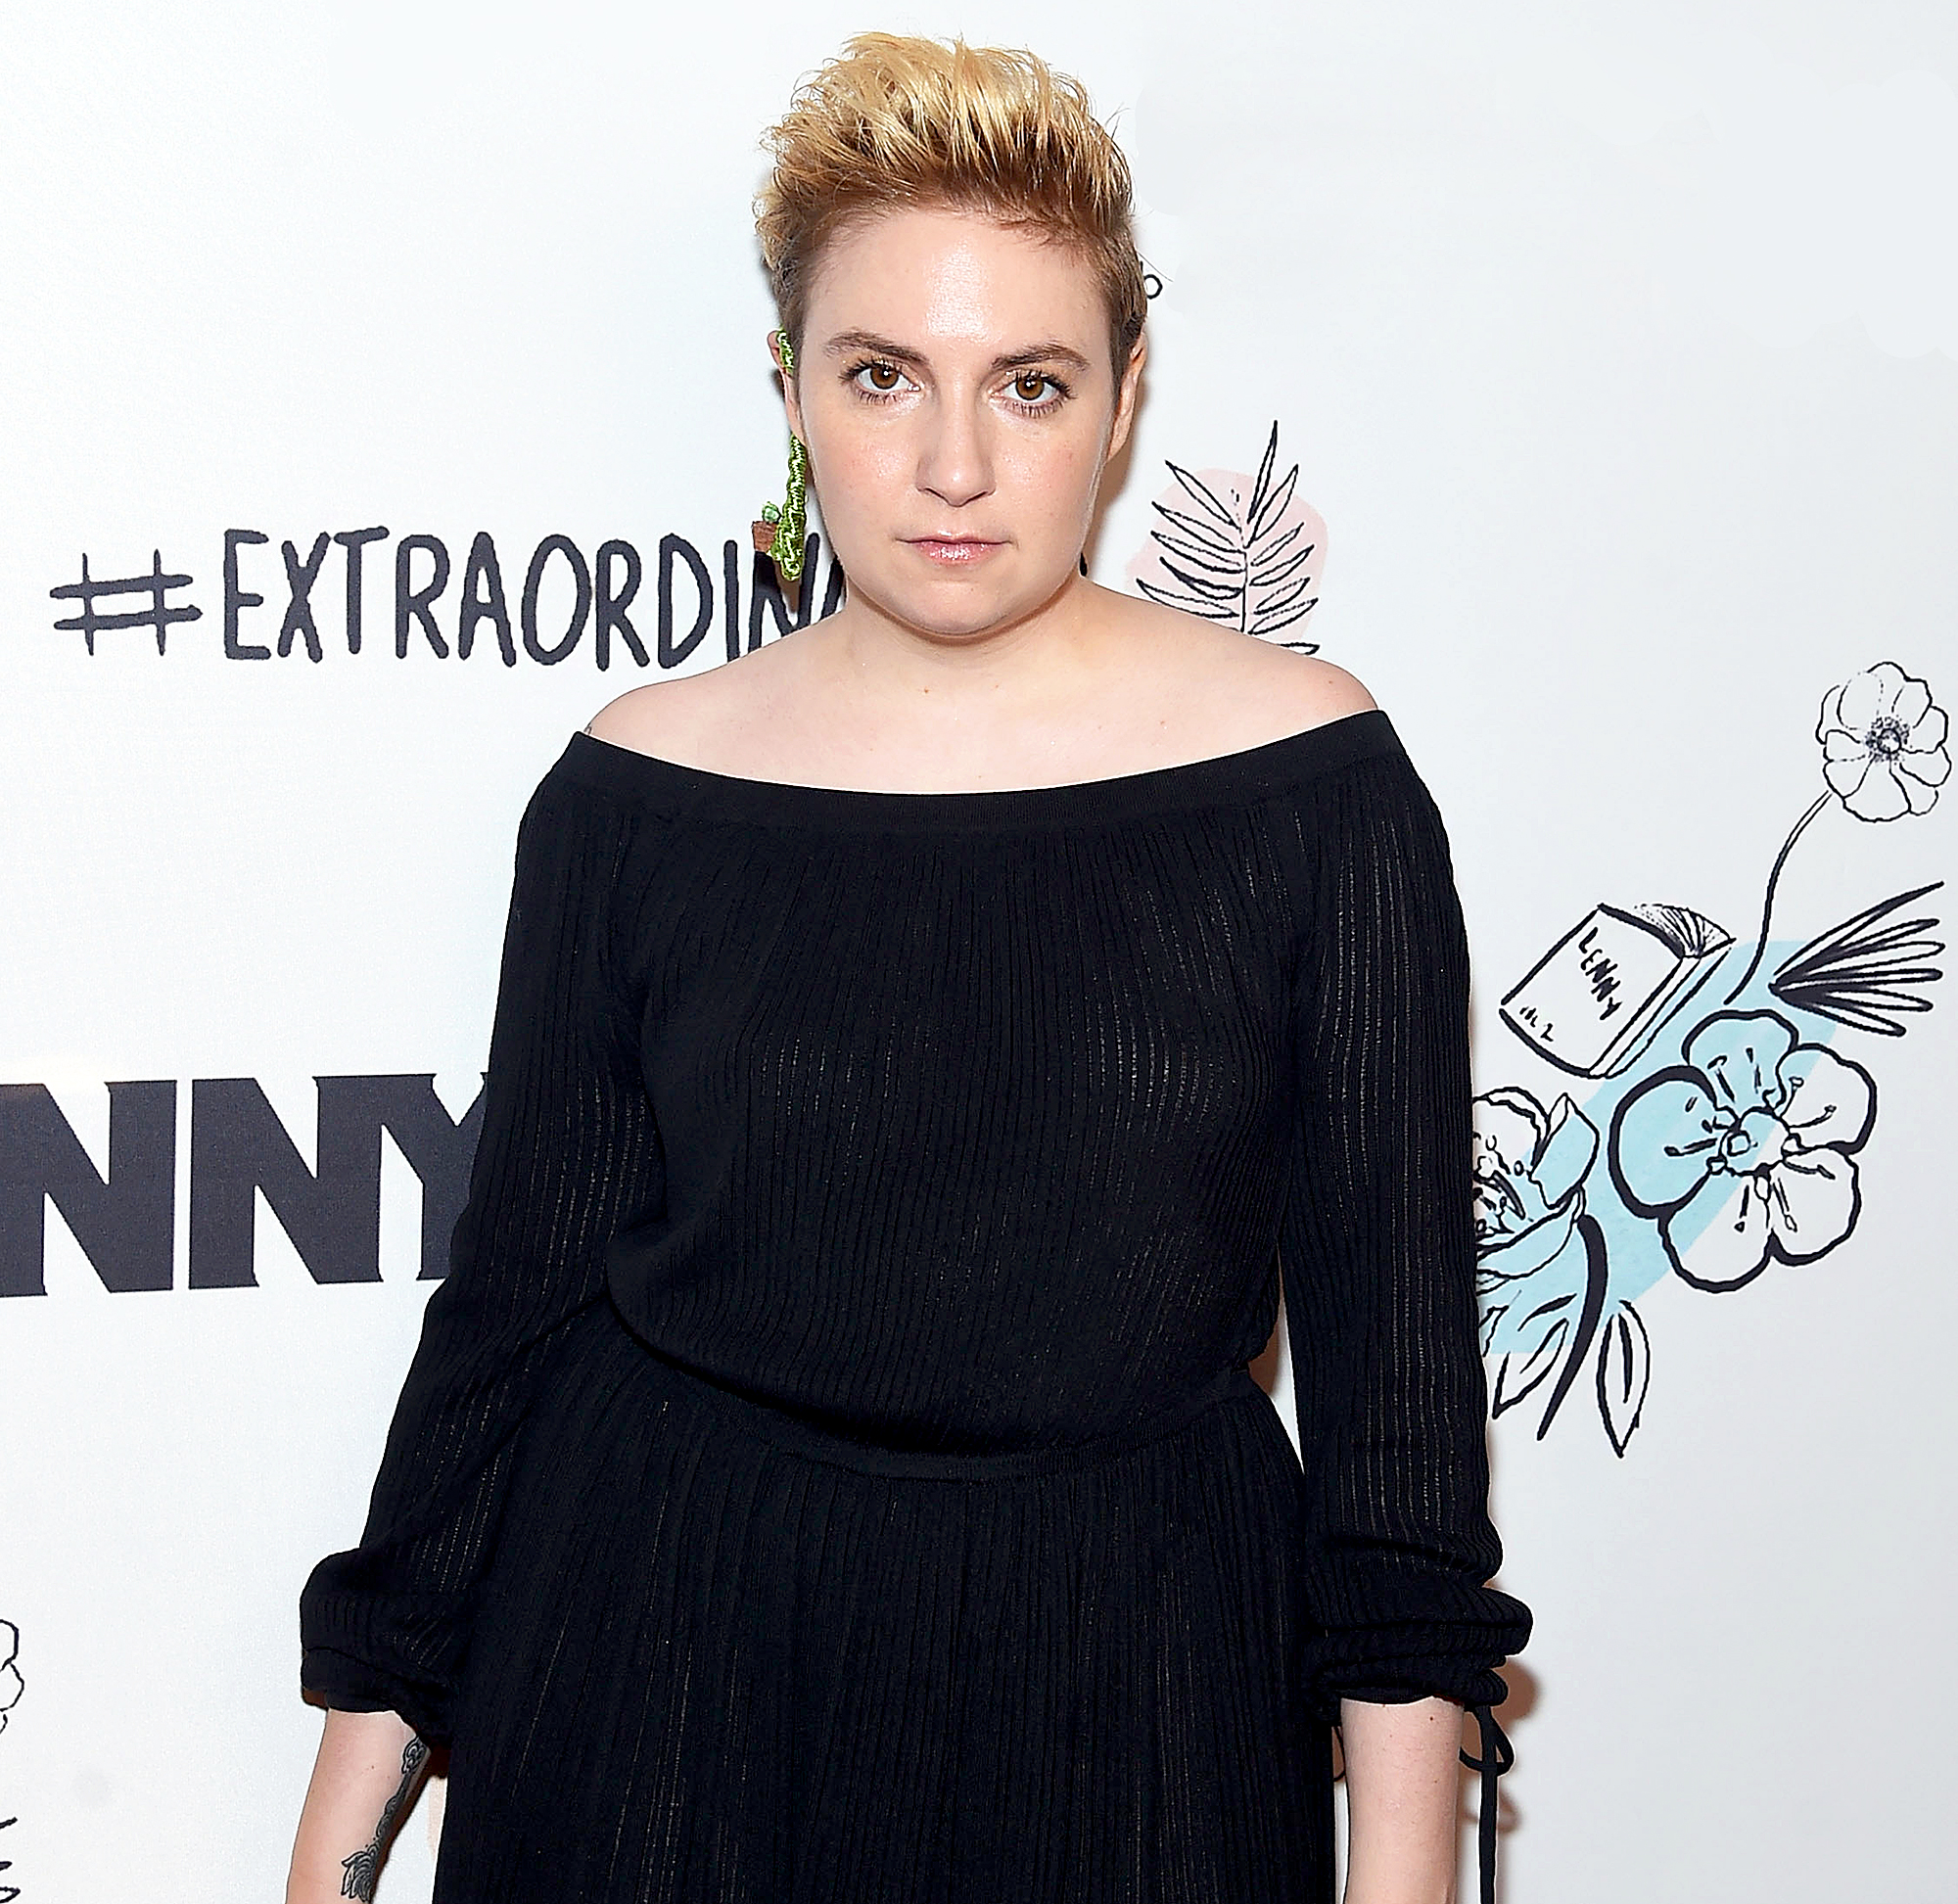 Lena Dunham accused of 'hipster racism' after she initially defended 'Girls' writer